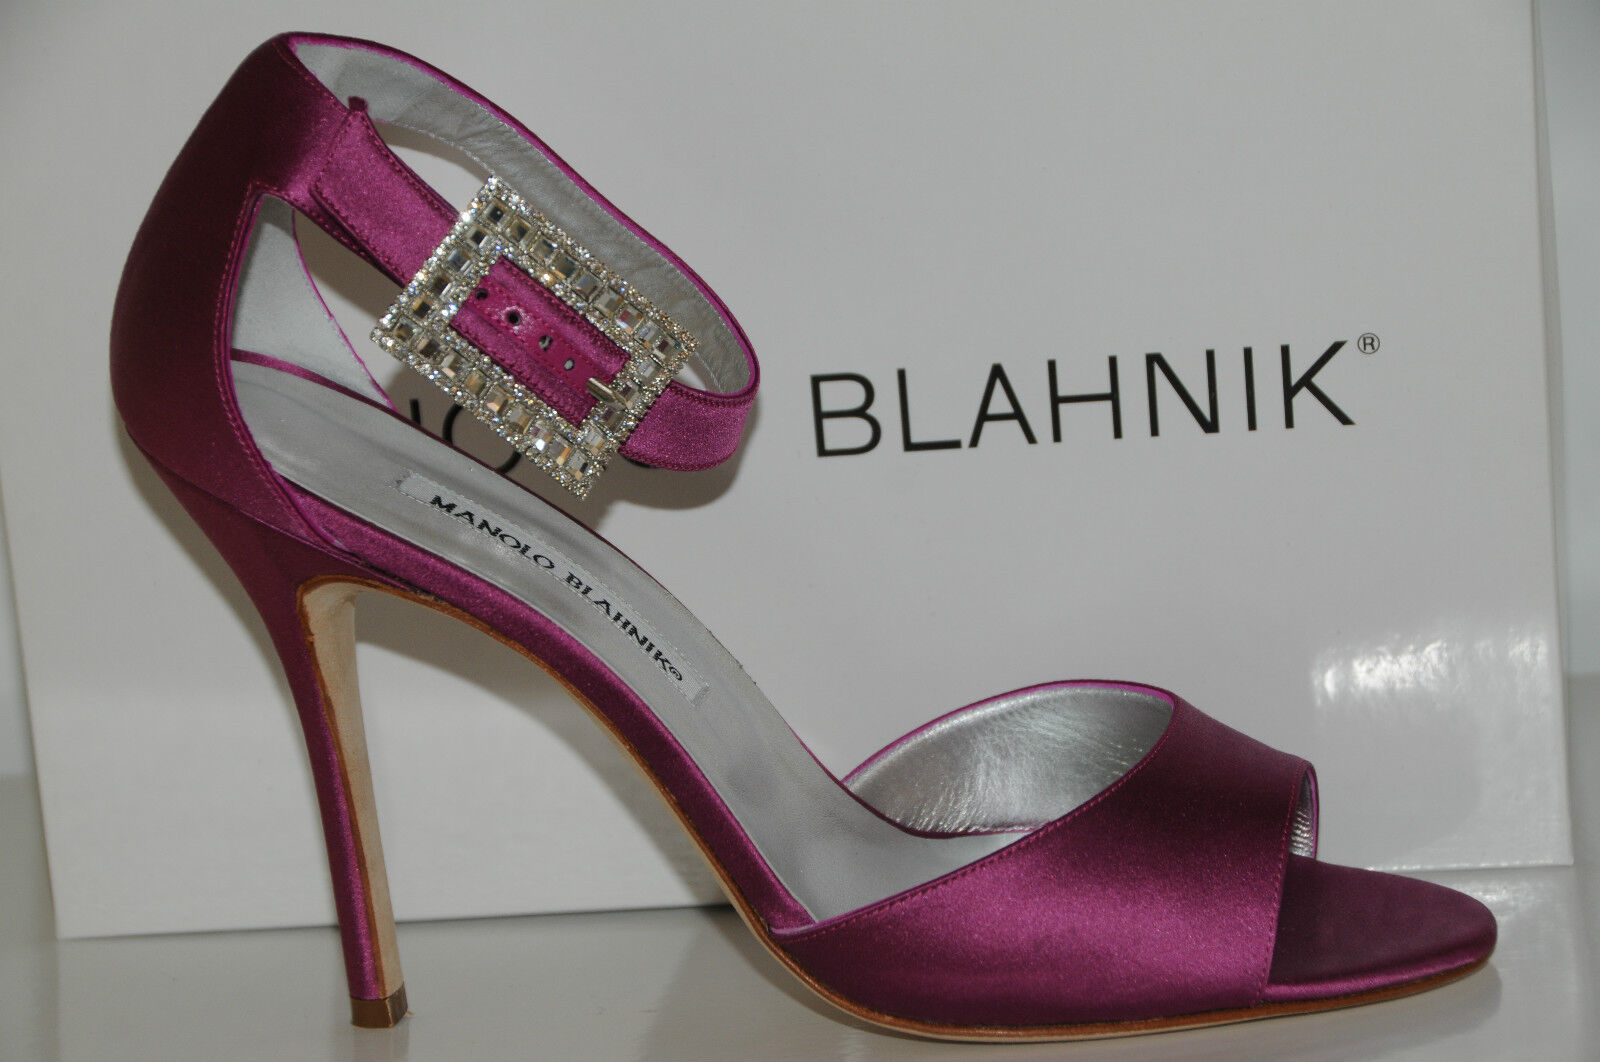 $925 NEW MANOLO BLAHNIK PINK DRIBBIN Satin DRIBBIN PINK JEWELED CRYSTAL SANDALS SHOES 40.5 10 9dfc11